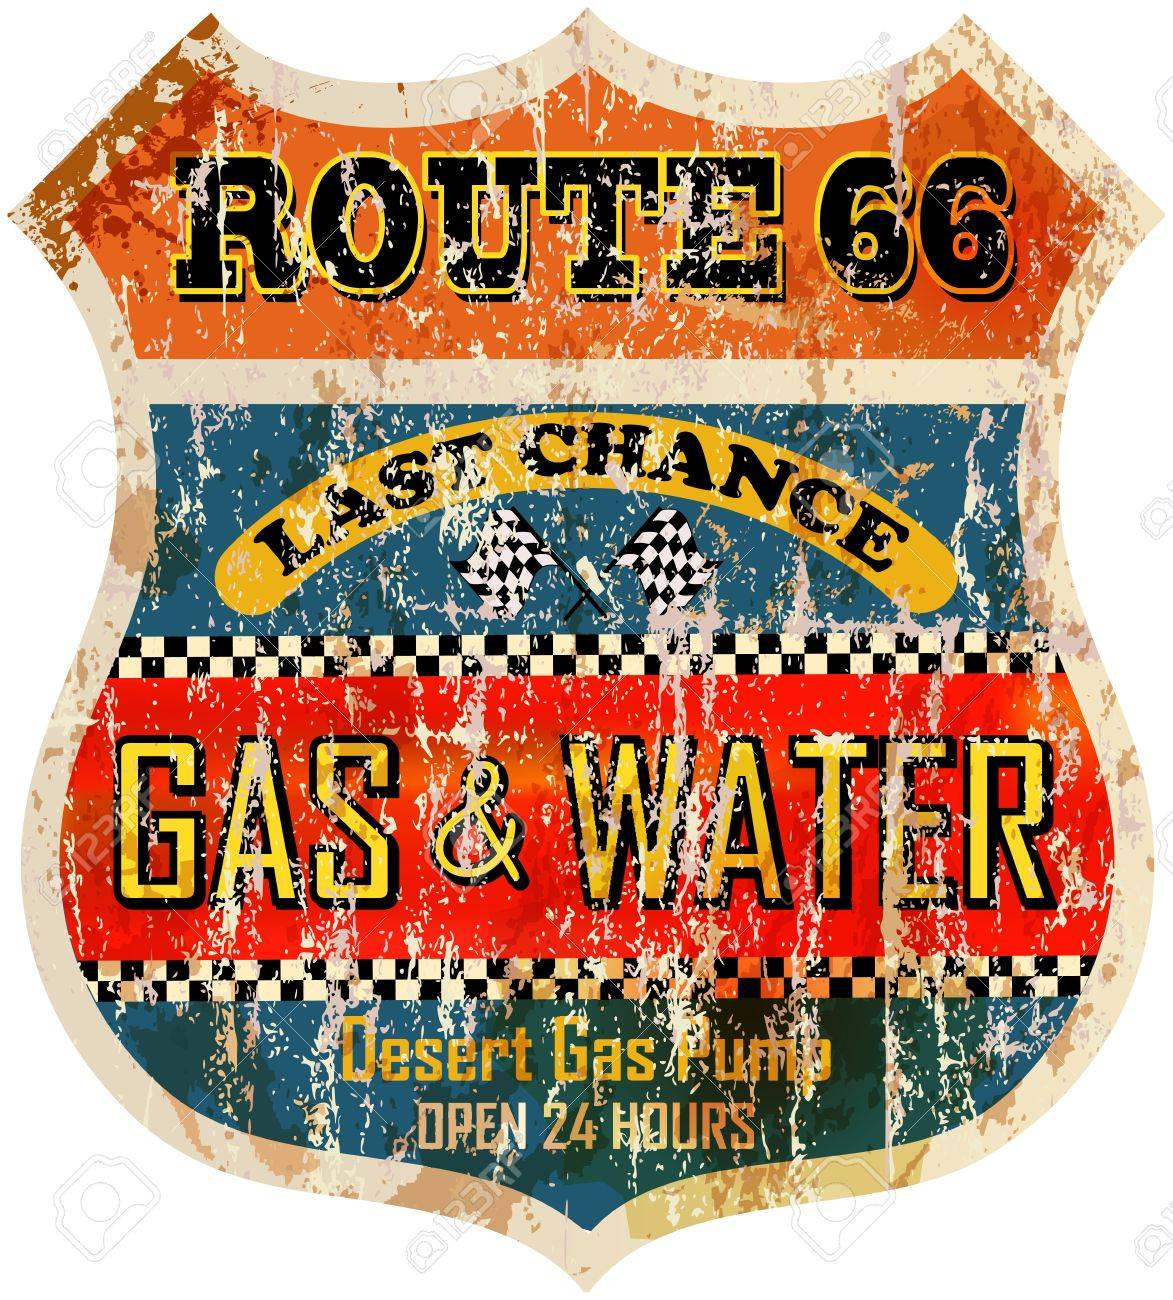 route sixty six gas station sign, retro style illustration - 33944771